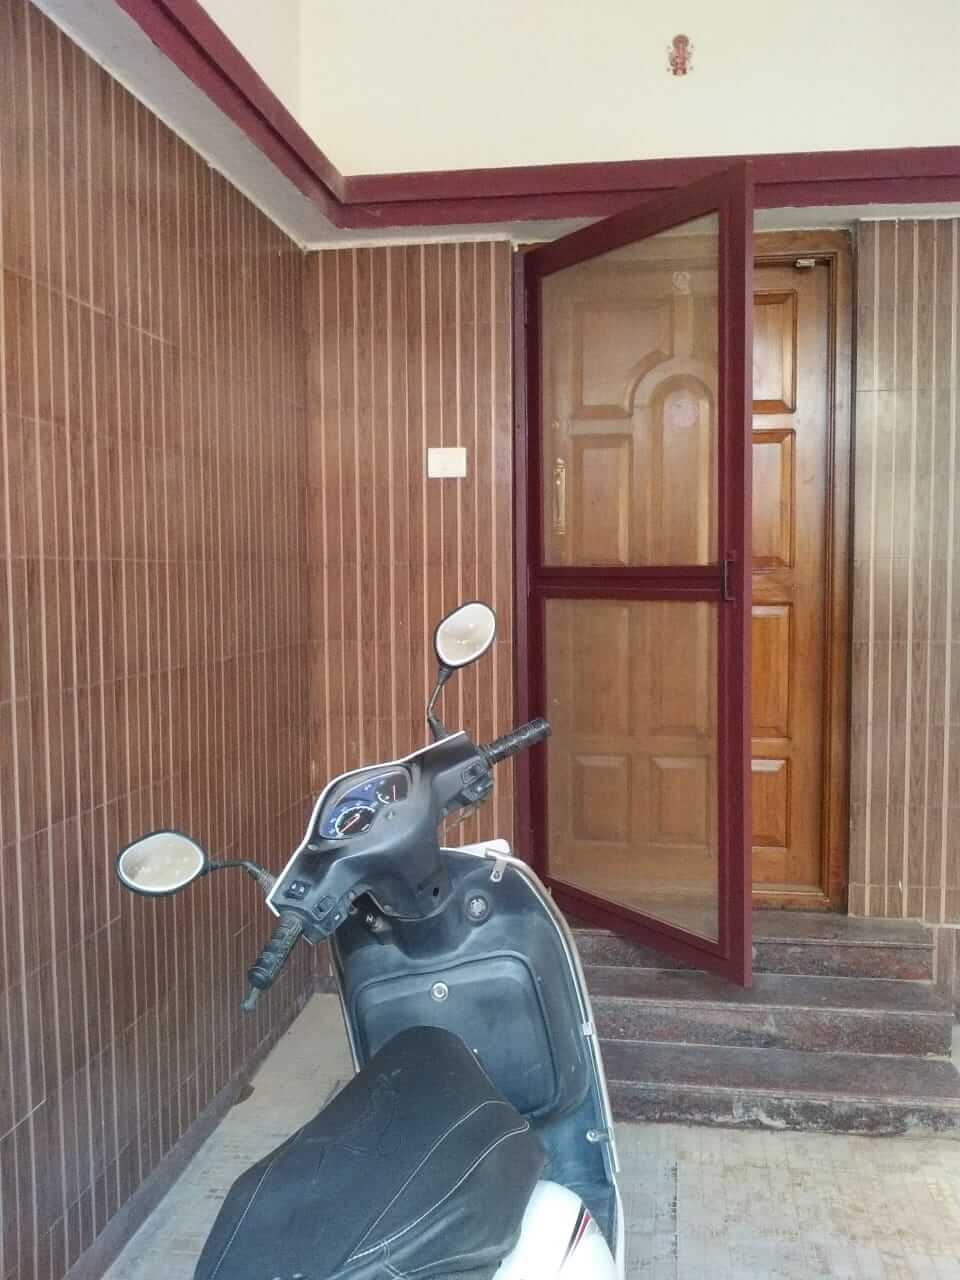 Independent House for Rent 1200 Sq. Feet at Bangalore, Kalkere